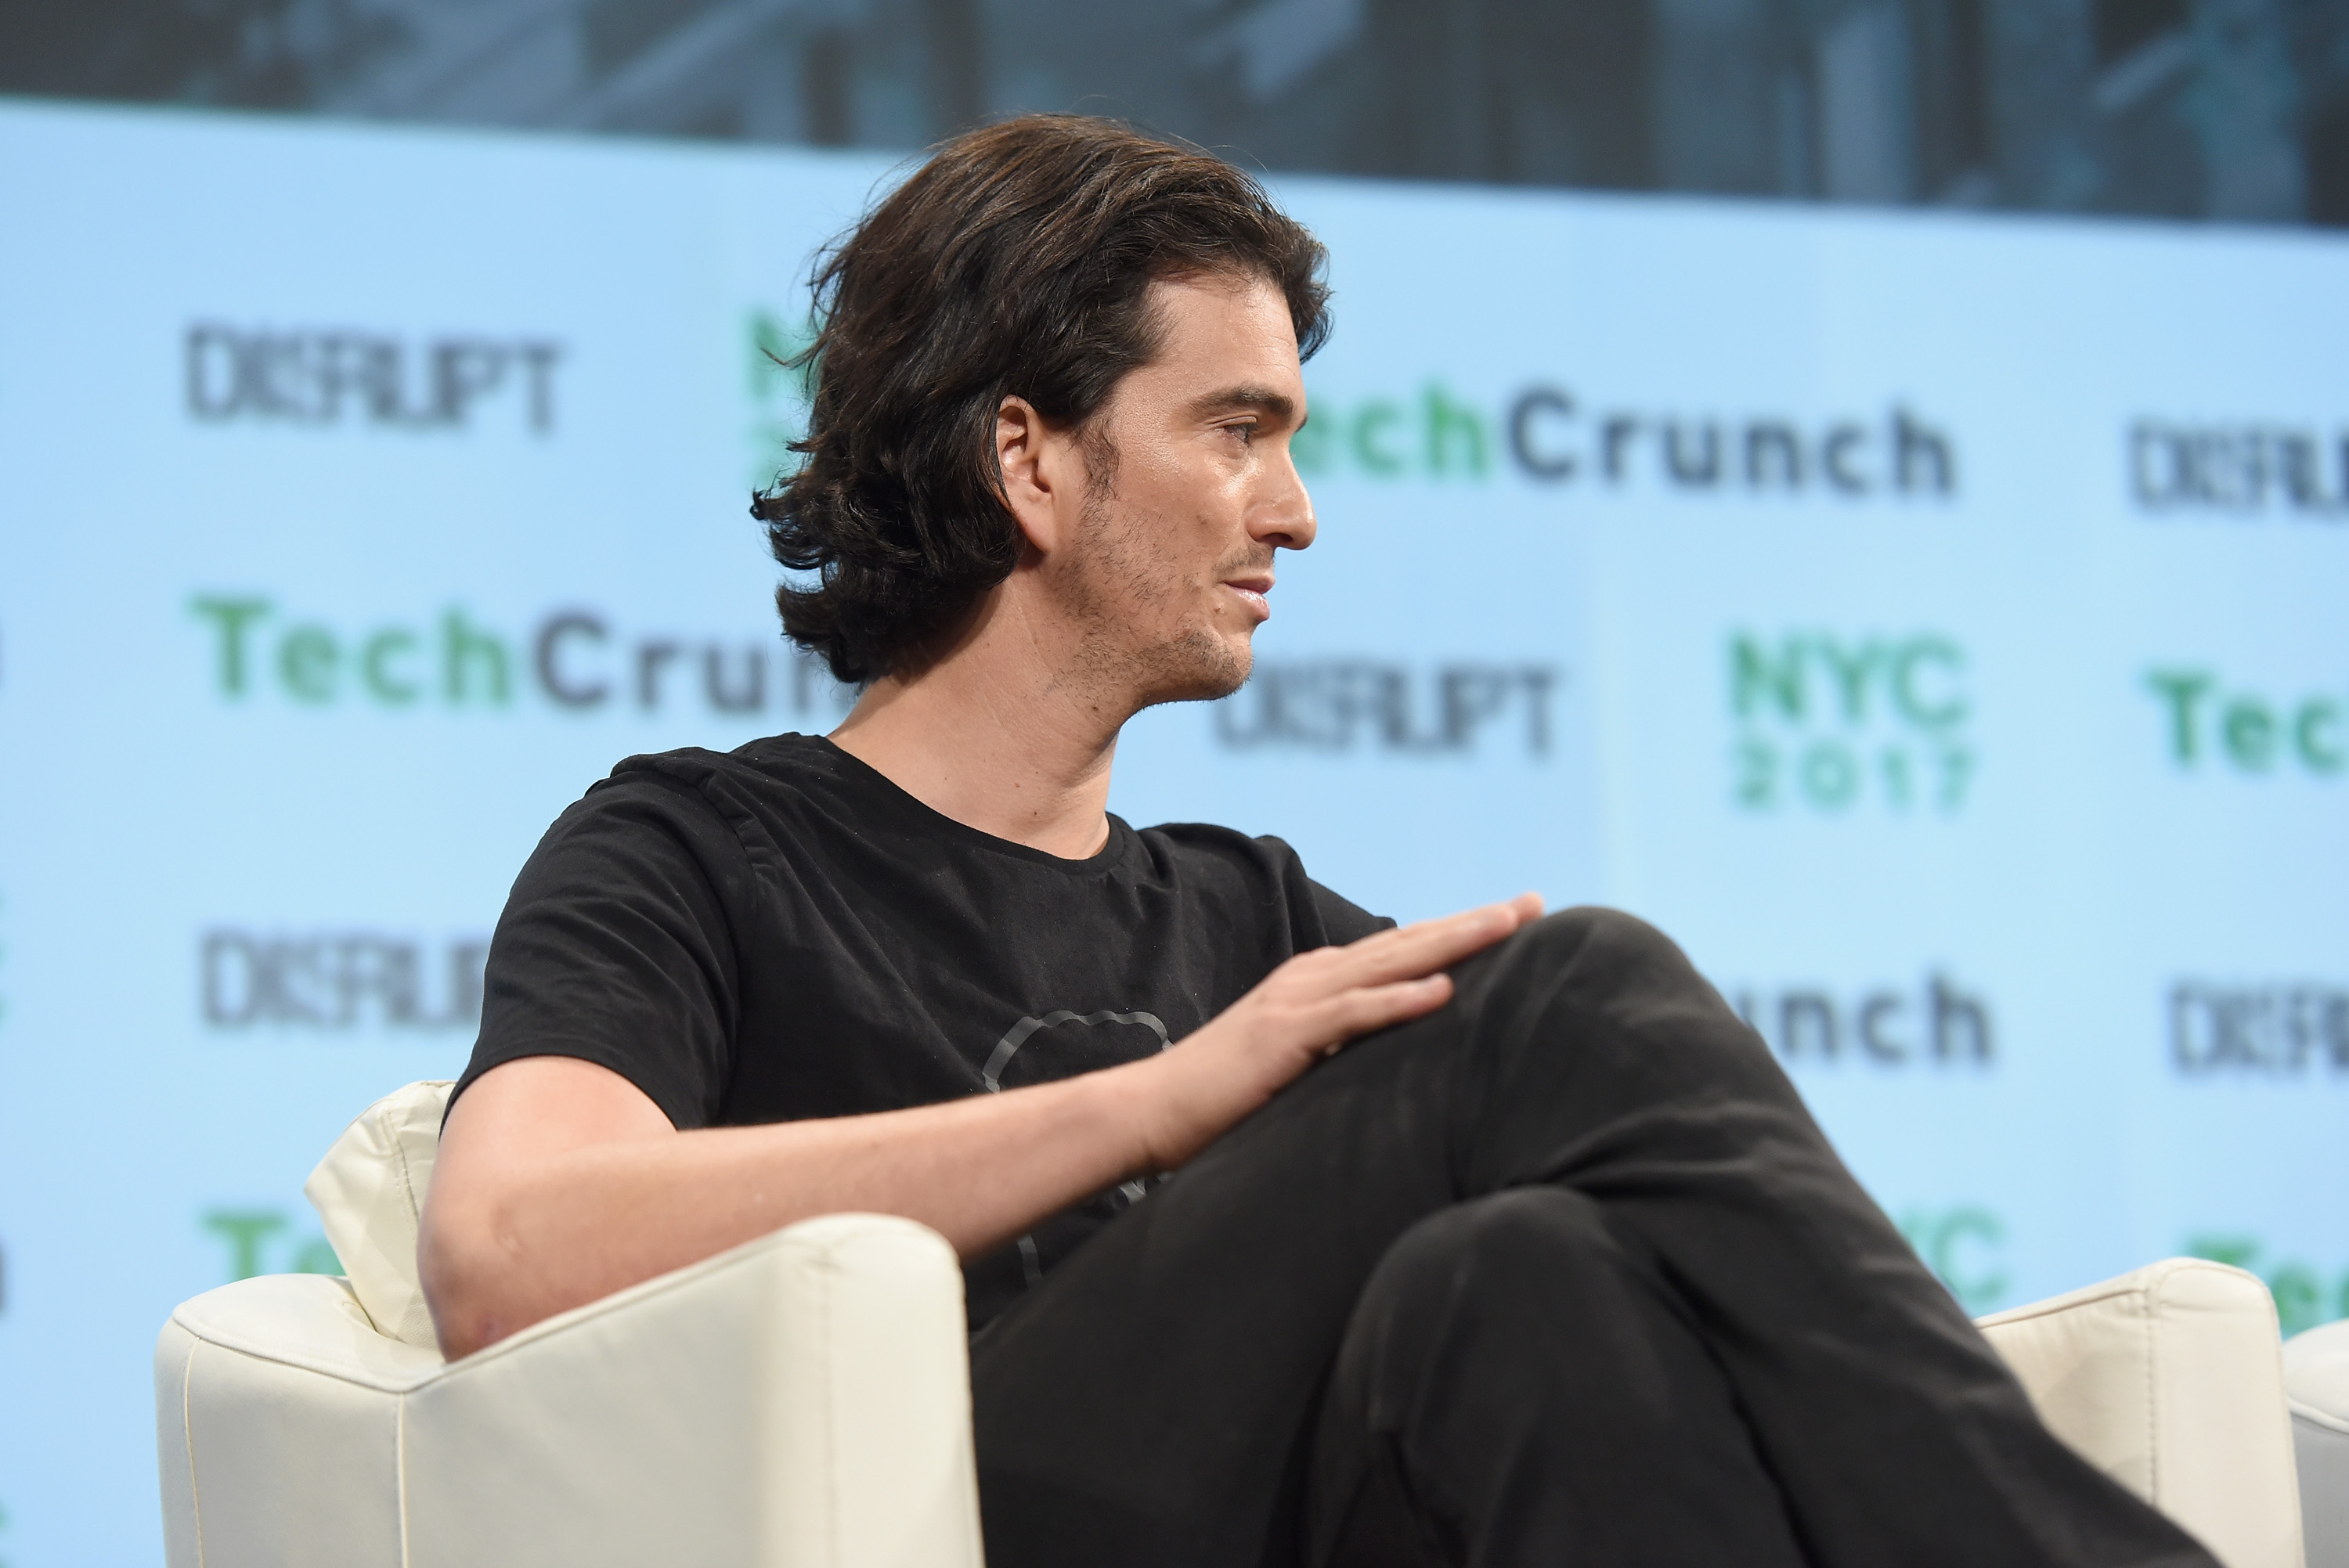 WeWork founder Adam Neumann sits in a chair turned away from the camera, showing his profile.